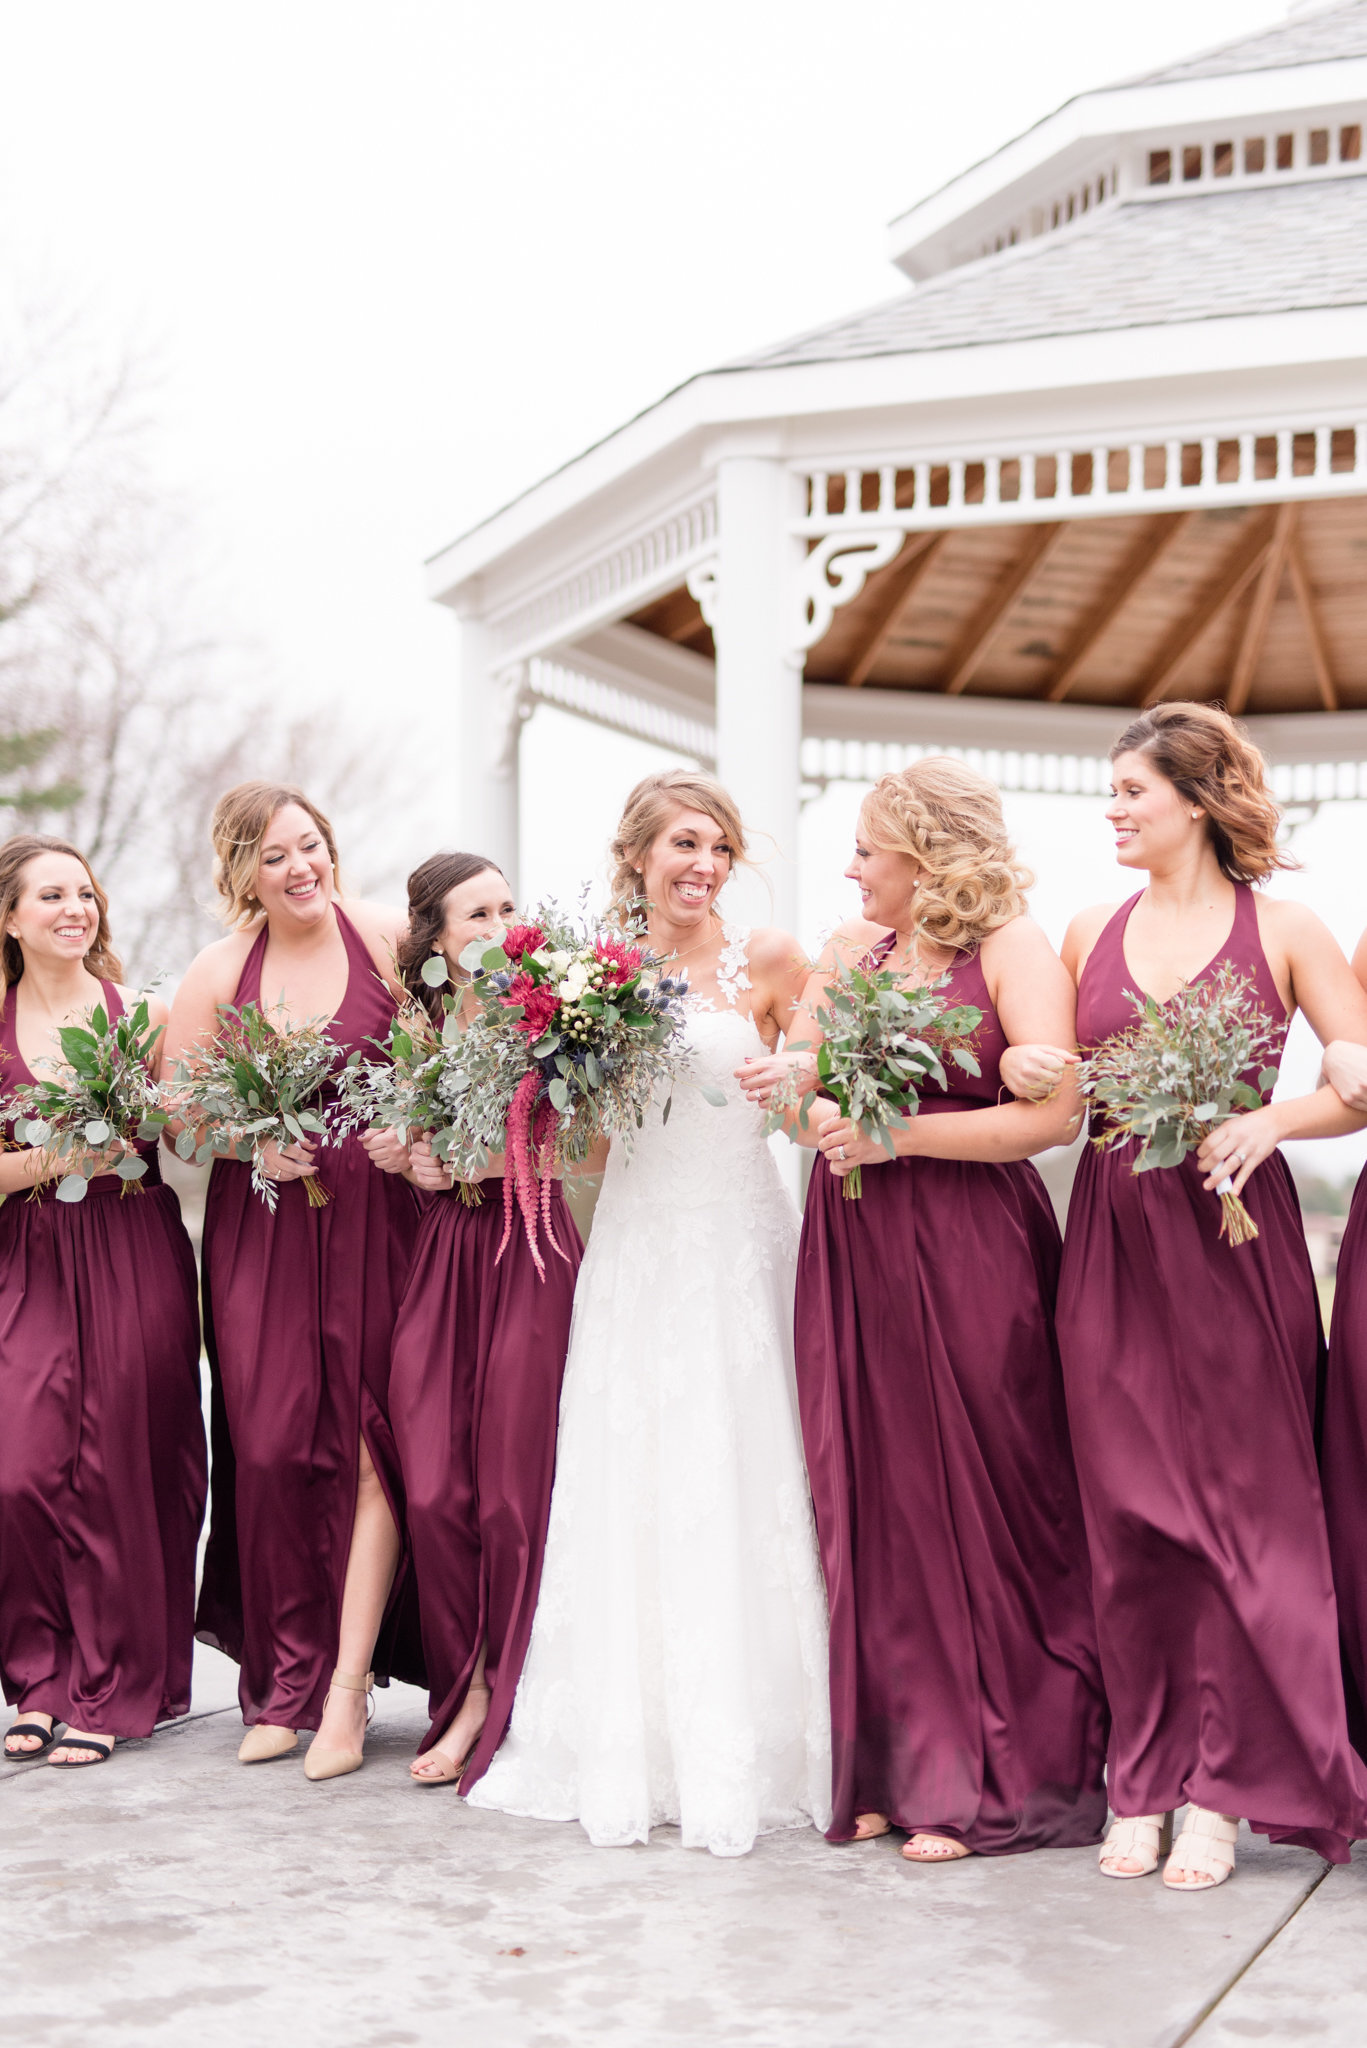 Bridal party laughs together.